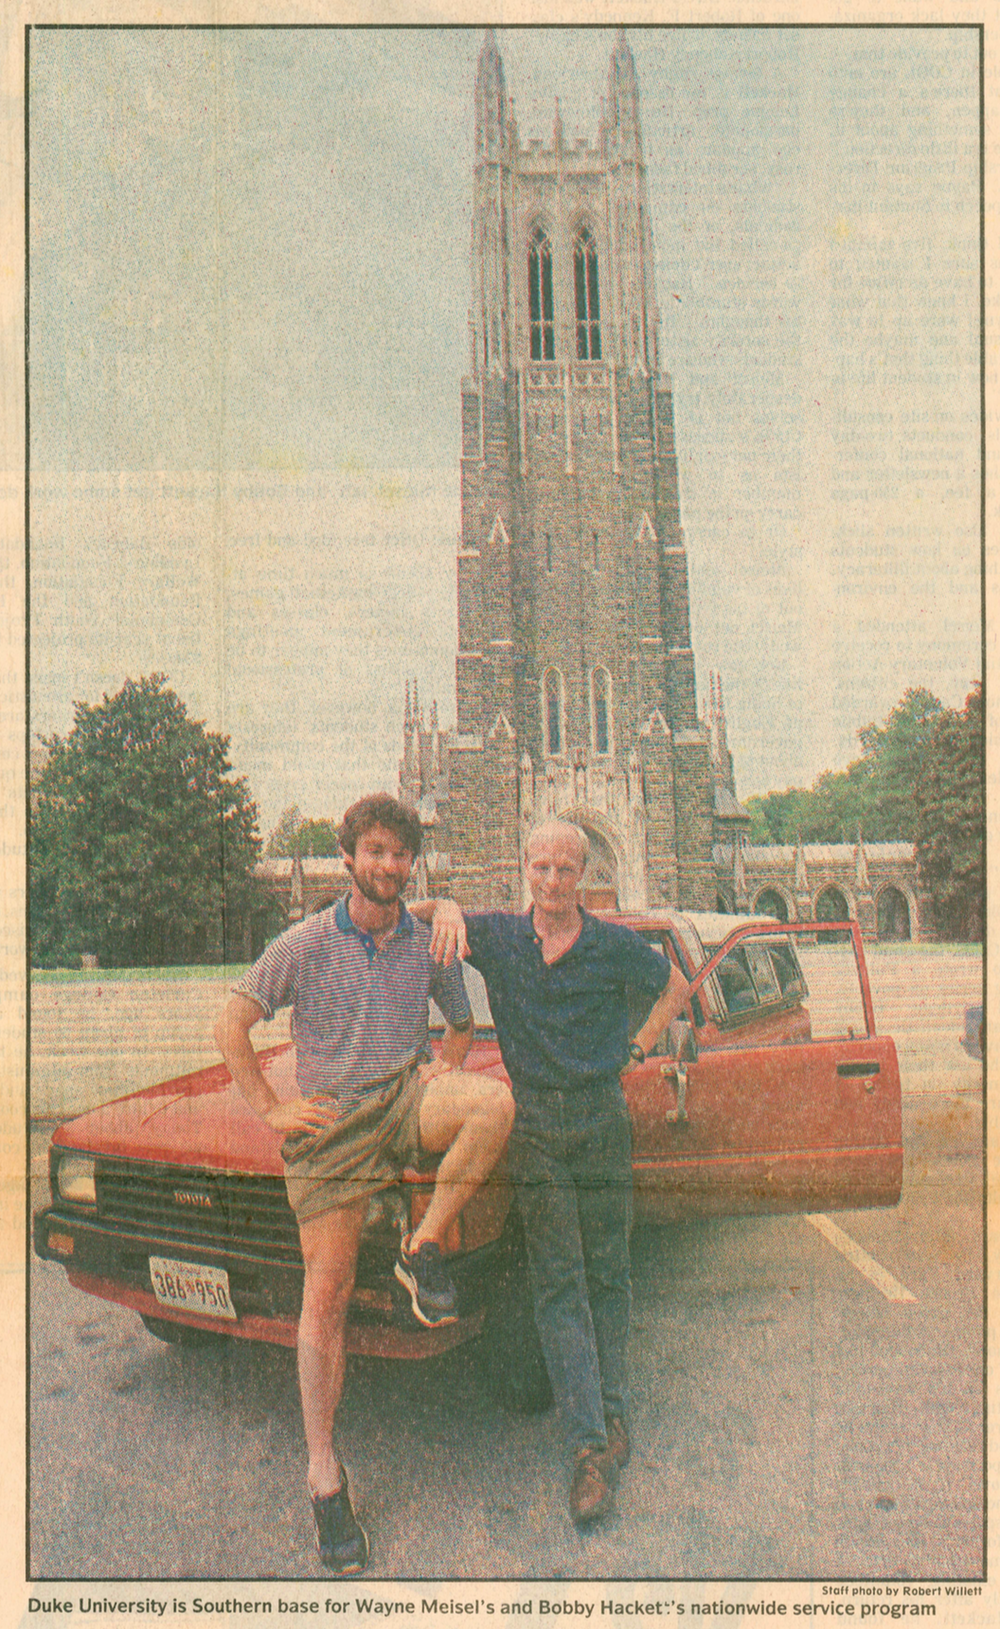 Wayne Meisel and Bobby Hackett profiled in this 1987  News & Observer  article at Duke University, COOL's Southern base.